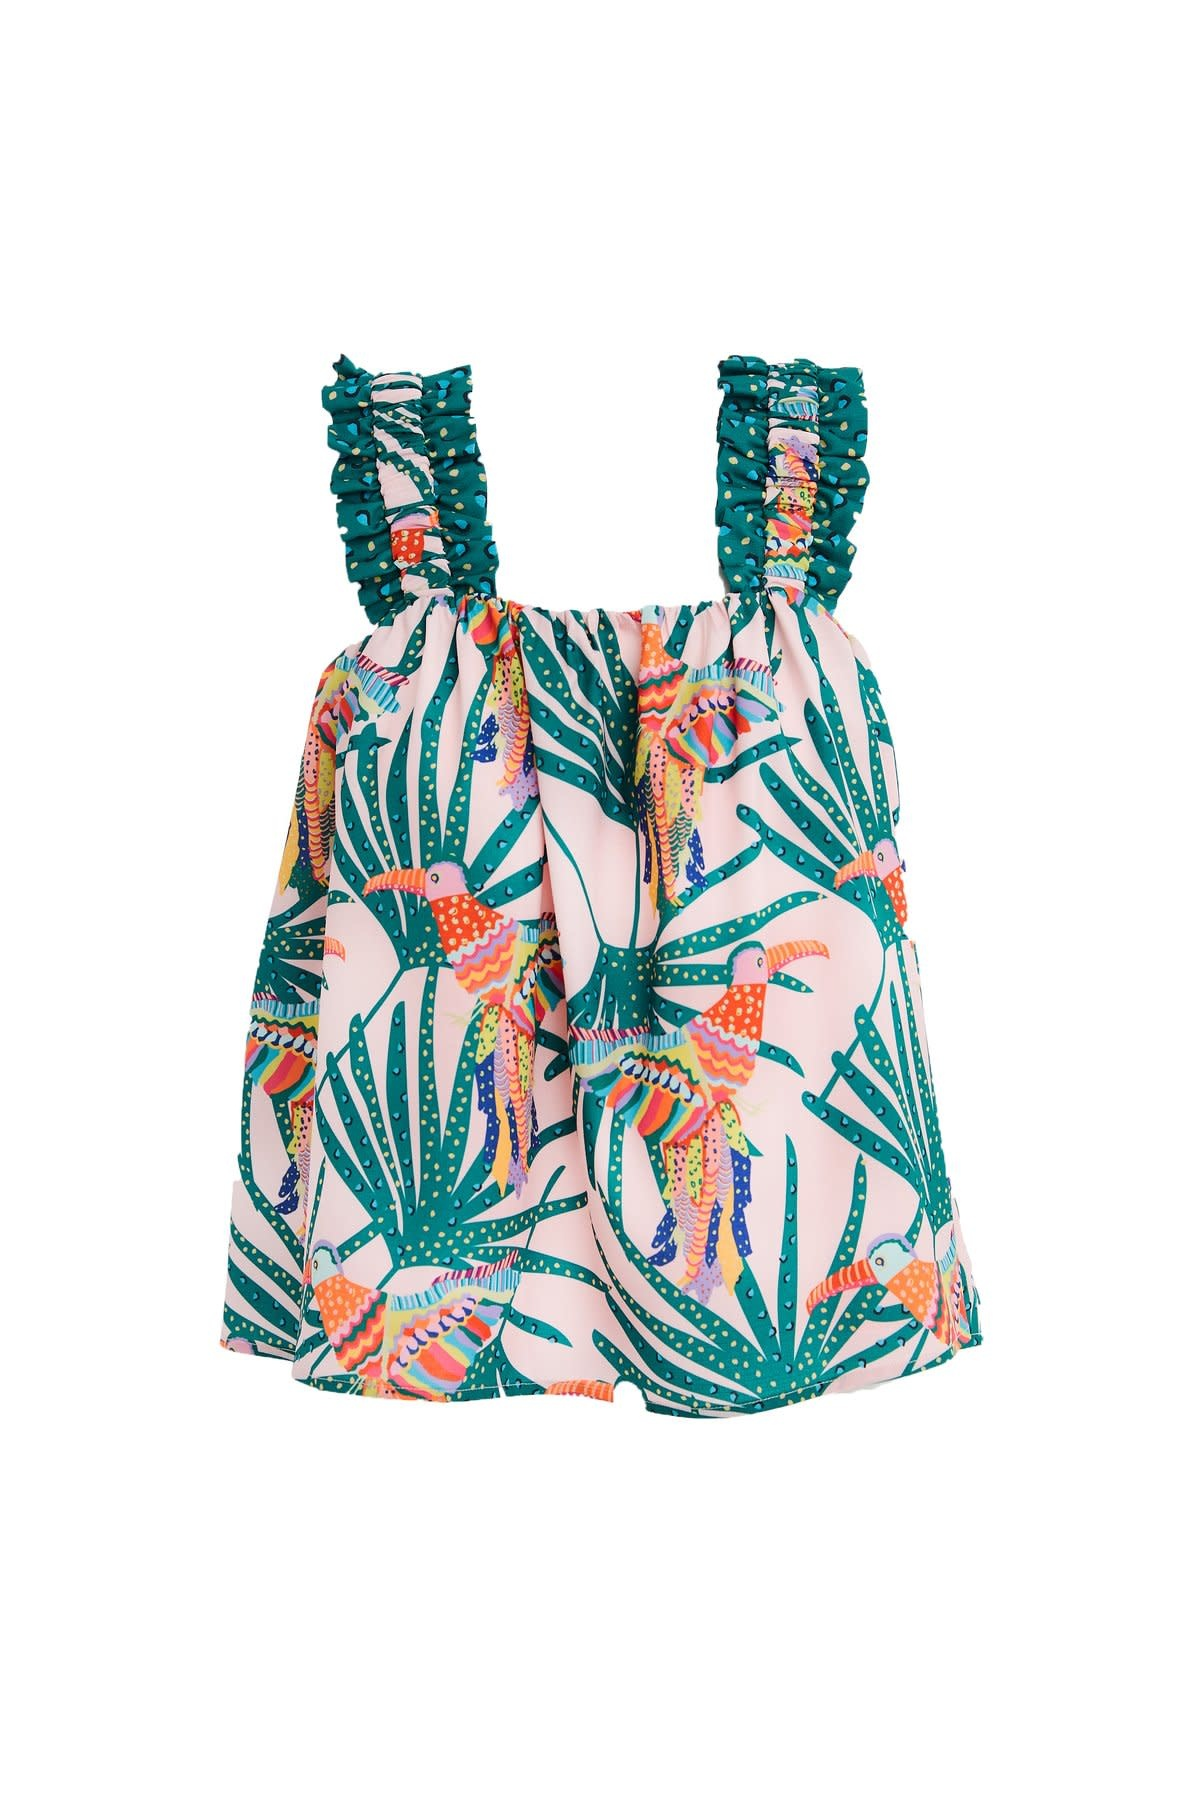 Crosby By Mollie Burch Danny Tank in Parrot Party